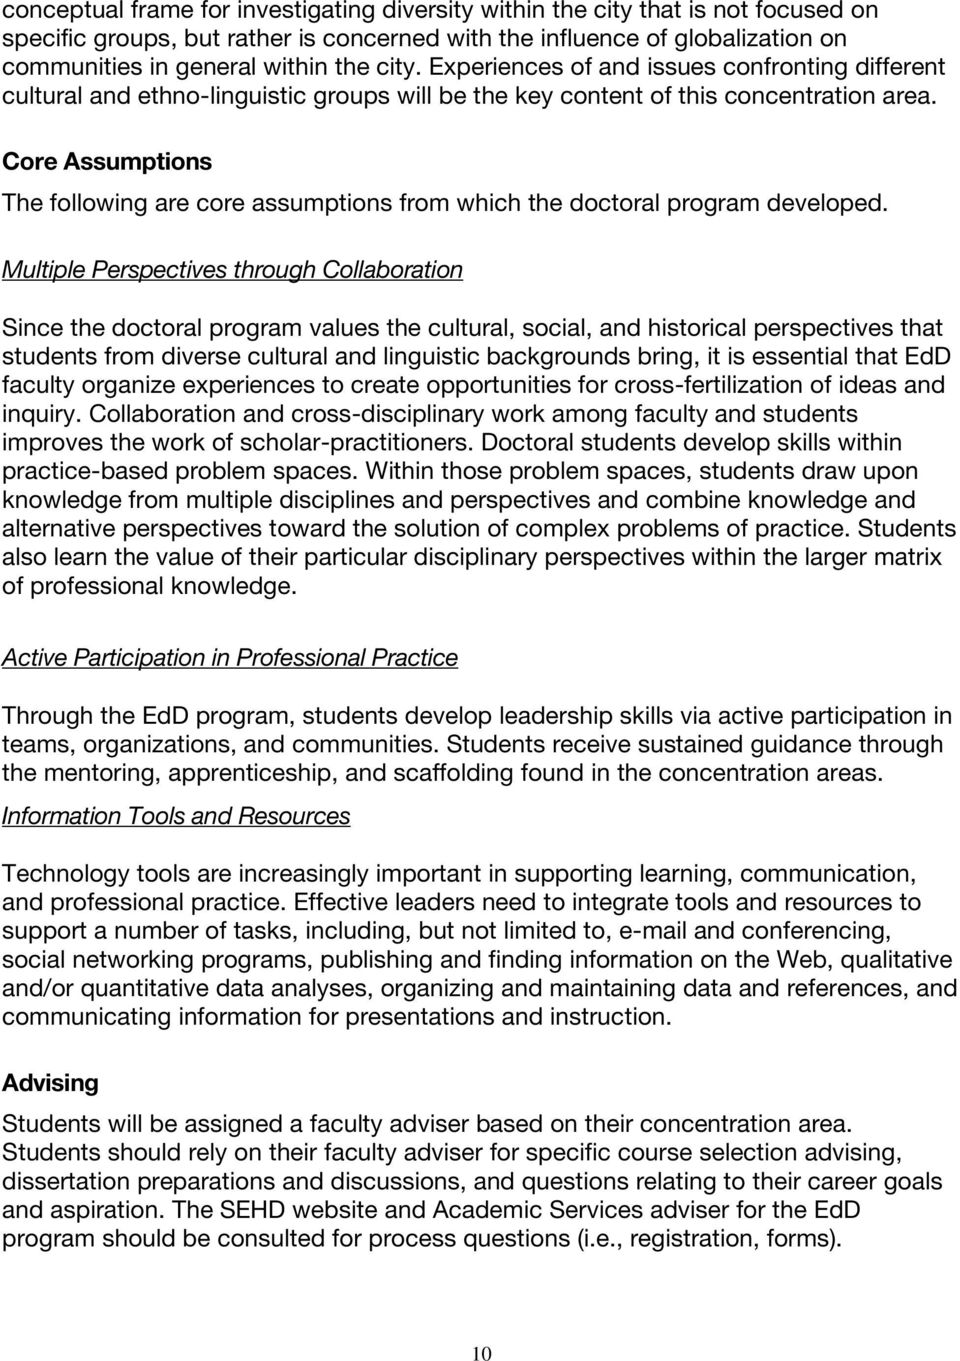 Core Assumptions The following are core assumptions from which the doctoral program developed.